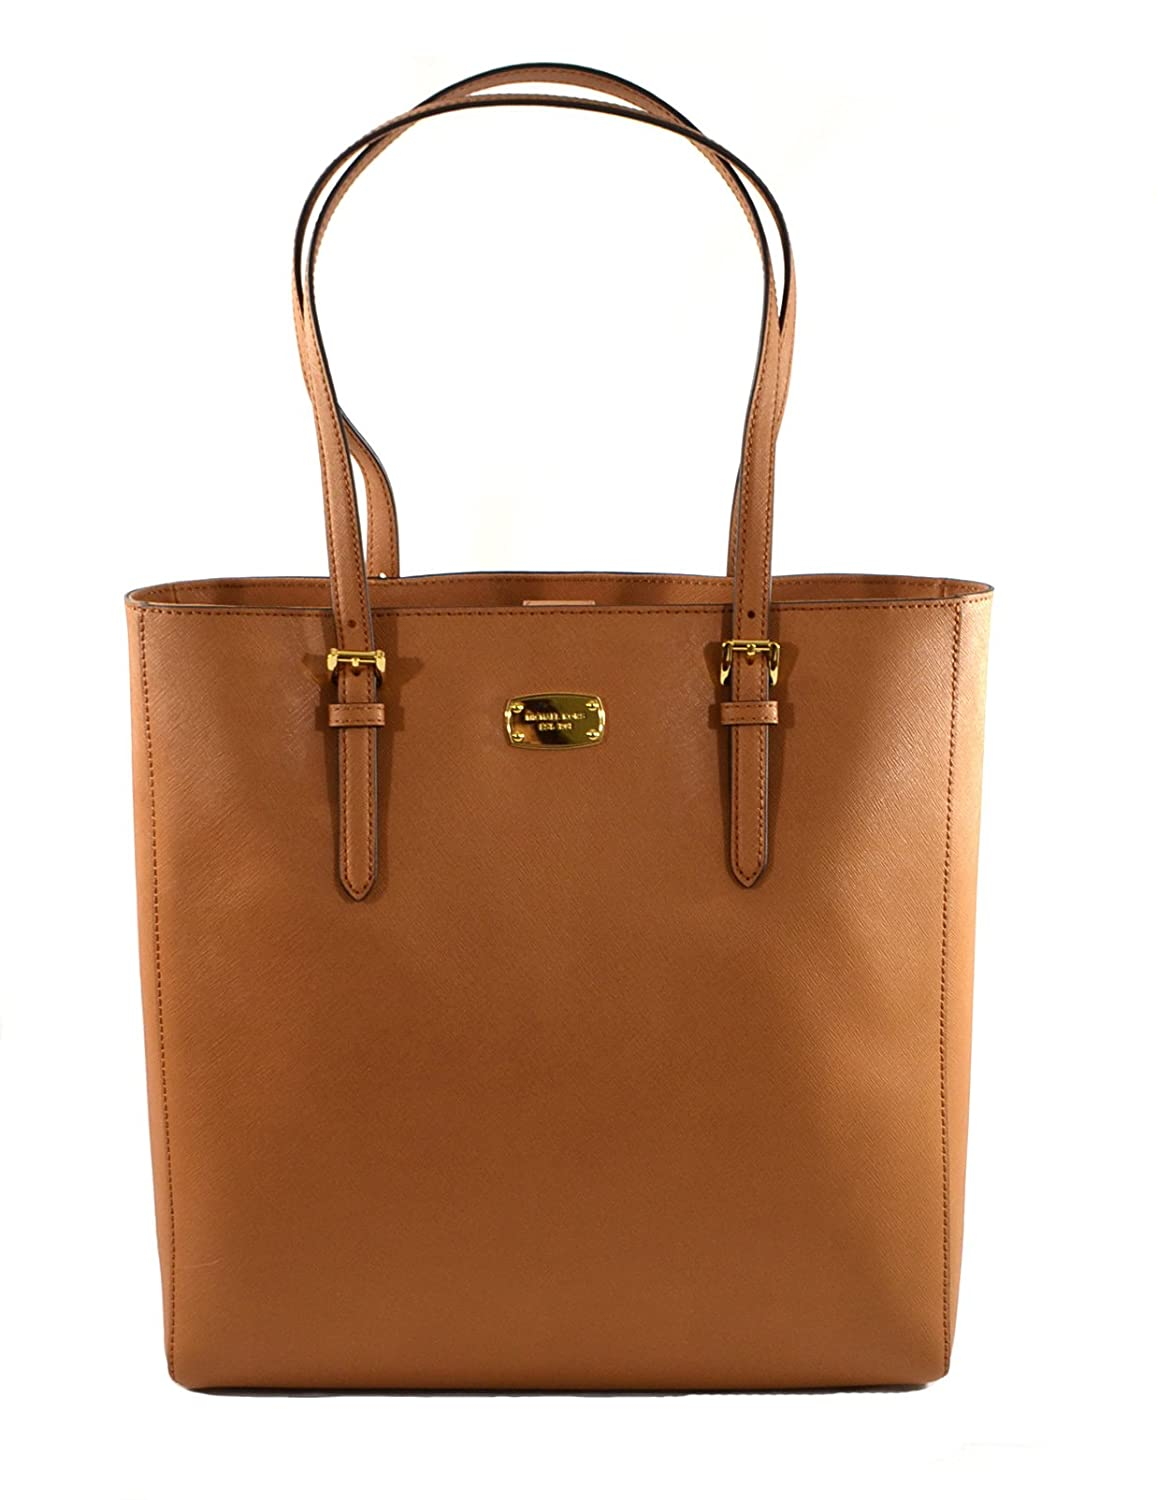 53304ce5c59 Amazon.com  Michael Kors Jet Set Travel Saffiano Leather Tote Bag, Acorn   Shoes